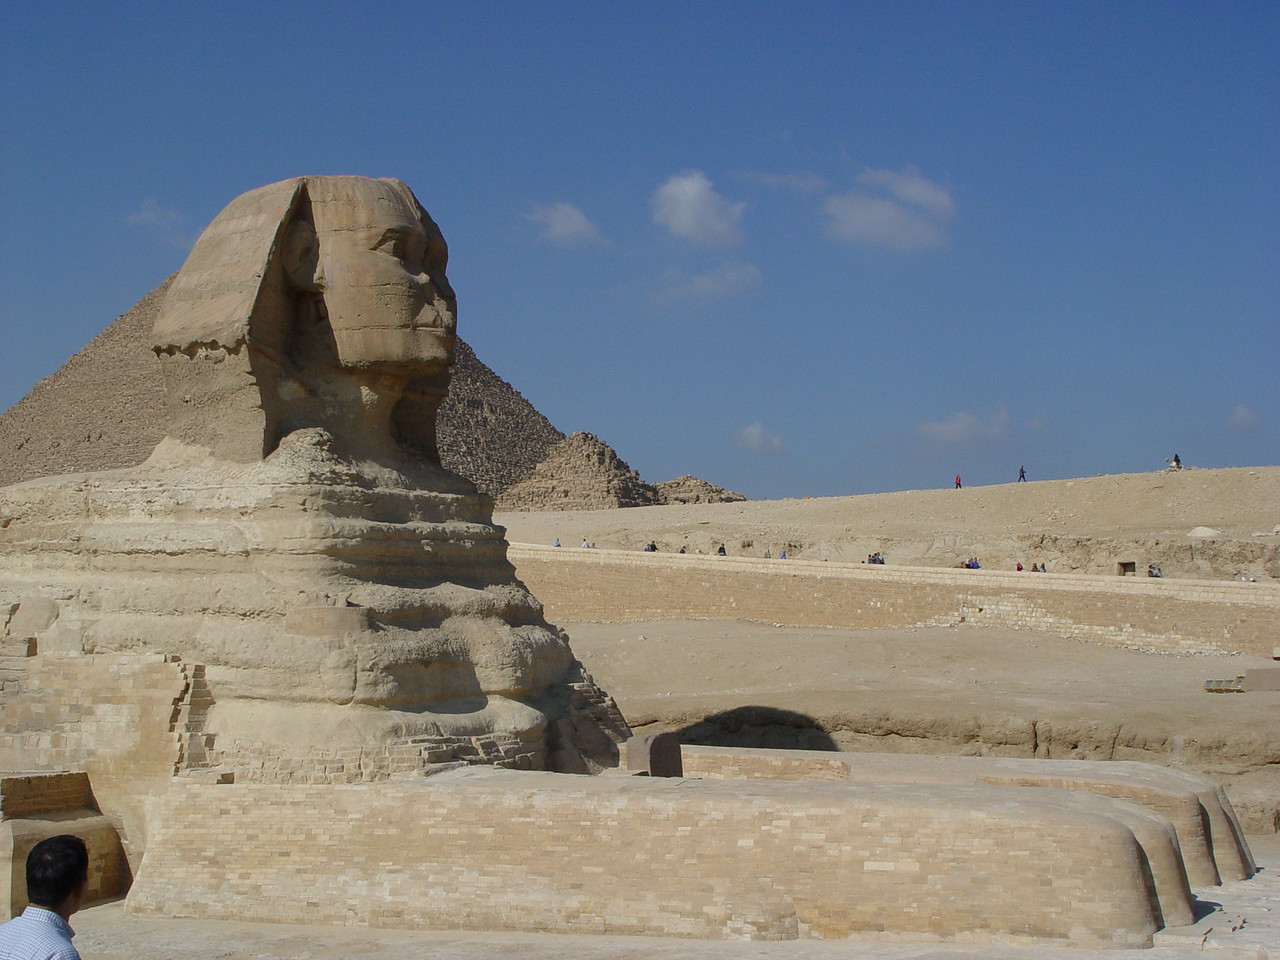 g) The Sphinx was carved out a natural outcropping of limestone. It's 241 feet/73.5 meters in length and reaches 65 feet/20 meters in height. The face is believed to be that of Khafre. What happened to it's nose? One popular story is that it was shot off by one of Napoleon's troopers. However, Frederick Lewis Norden, an artist and marine architect sketched the Sphinx in 1737. His detailed drawings, published in 1755, showed the Sphinx with no nose. It is very unlikely that he would omit the nose if it was present. We can conclude that the nose's removal can not be blamed on Napoleon's troops, who visited more than 50 years later.<br />  All throughout egypt though, we see many statues where the nose's have been removed. This was a common way of defacing statues.